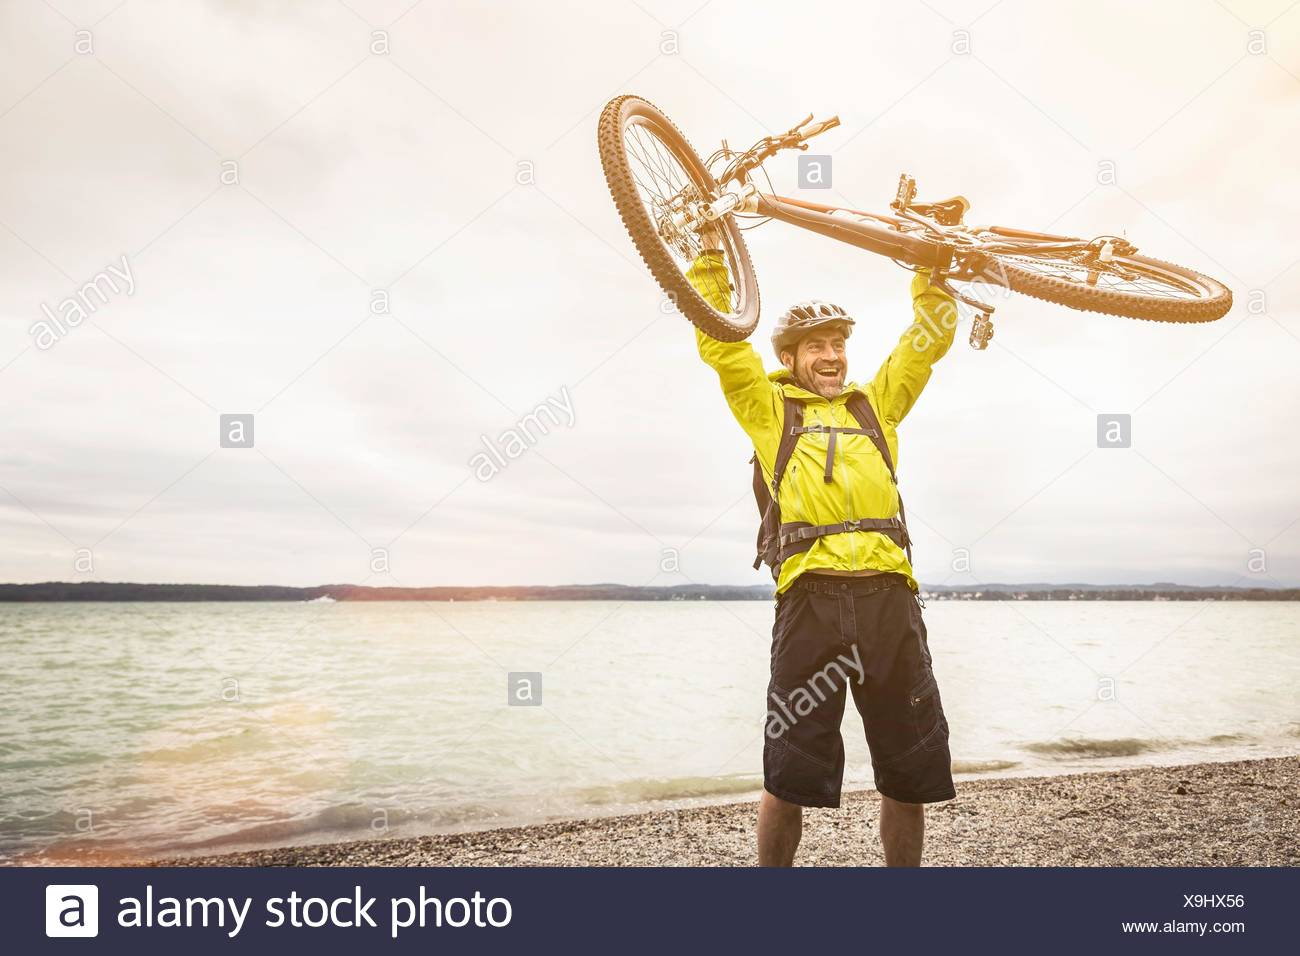 Mature male mountain biker holding up cycle at lakeside Stock Photo